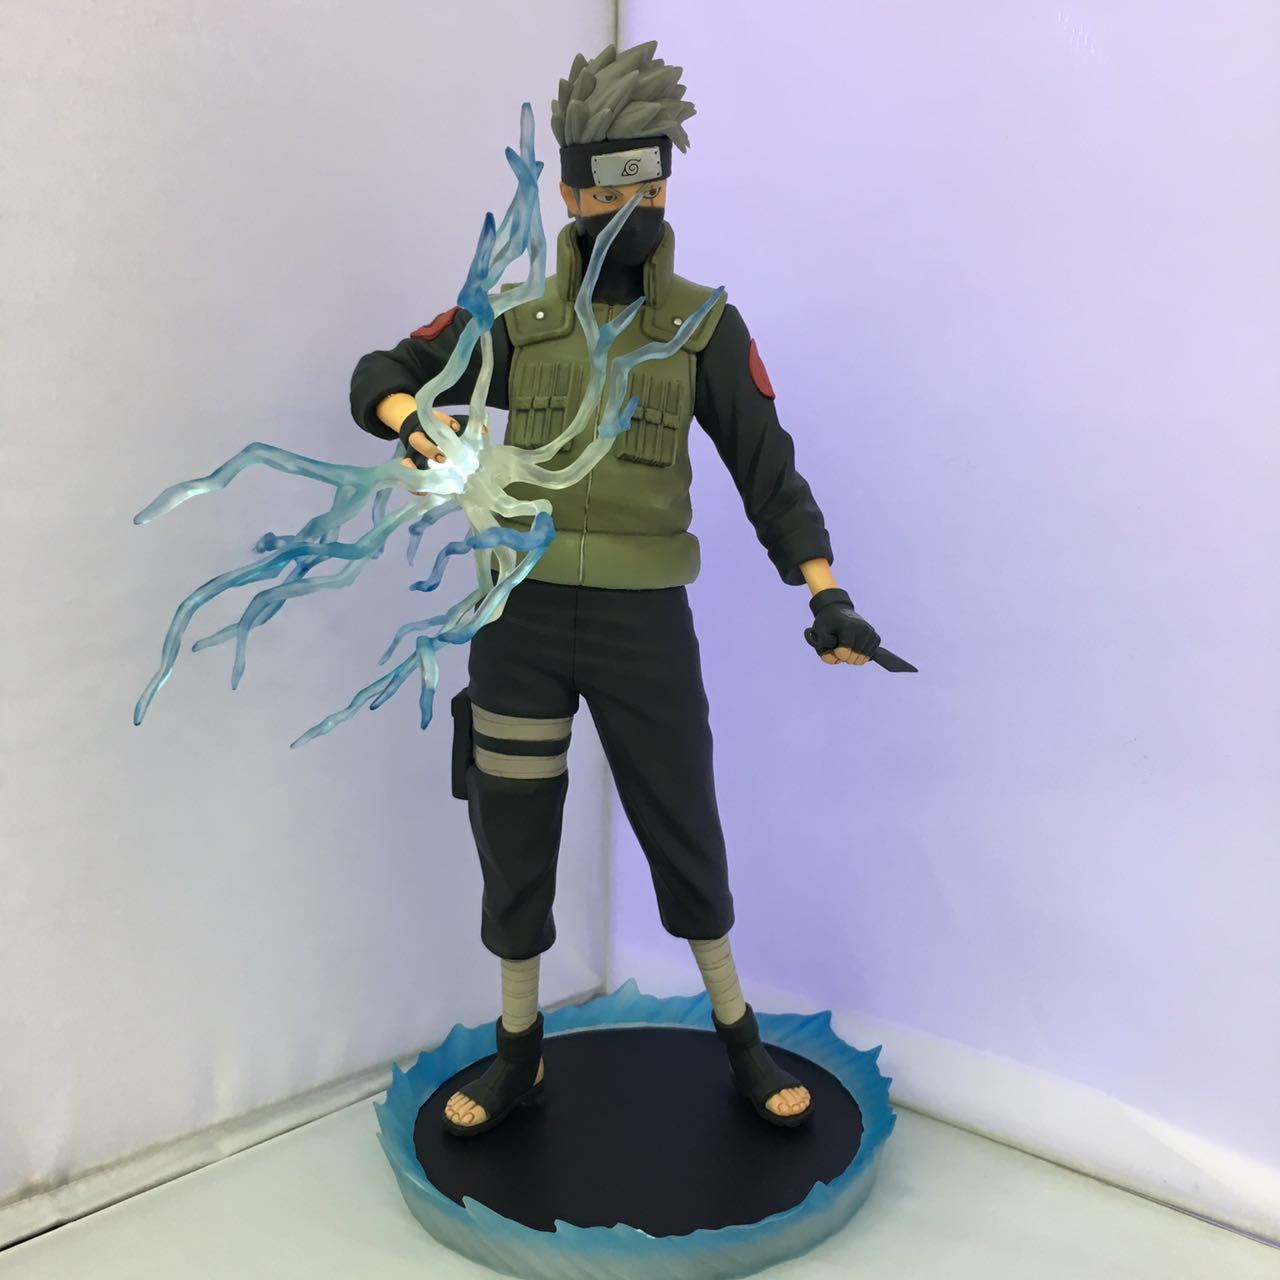 NEW 1pcs 30CM pvc anime figure Naruto big size Hatake Kakashi action figure collectible model toys brinquedos japanese anime figures 23 cm anime gem naruto hatake kakashi pvc collectible figure toys classic toys for boys free shipping